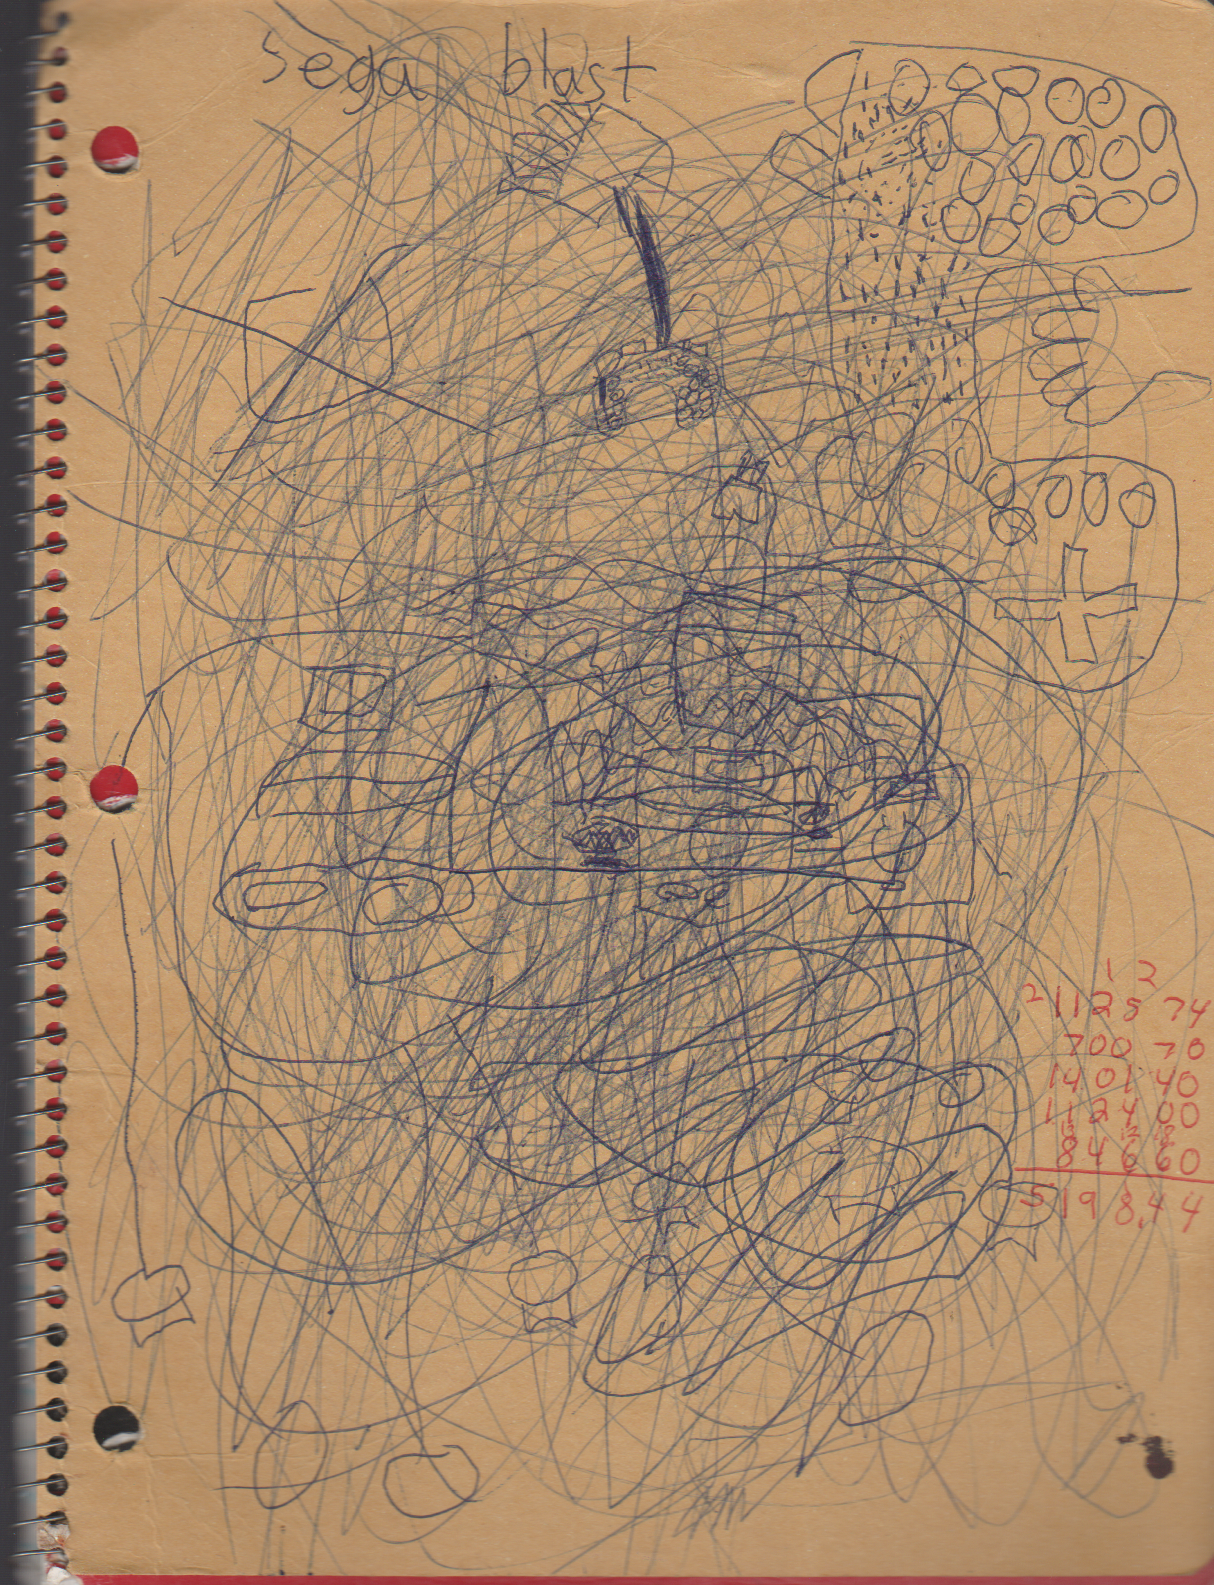 1996-08-18 - Saturday - 11 yr old Joey Arnold's School Book, dates through to 1998 apx, mostly 96, Writings, Drawings, Etc-104.png